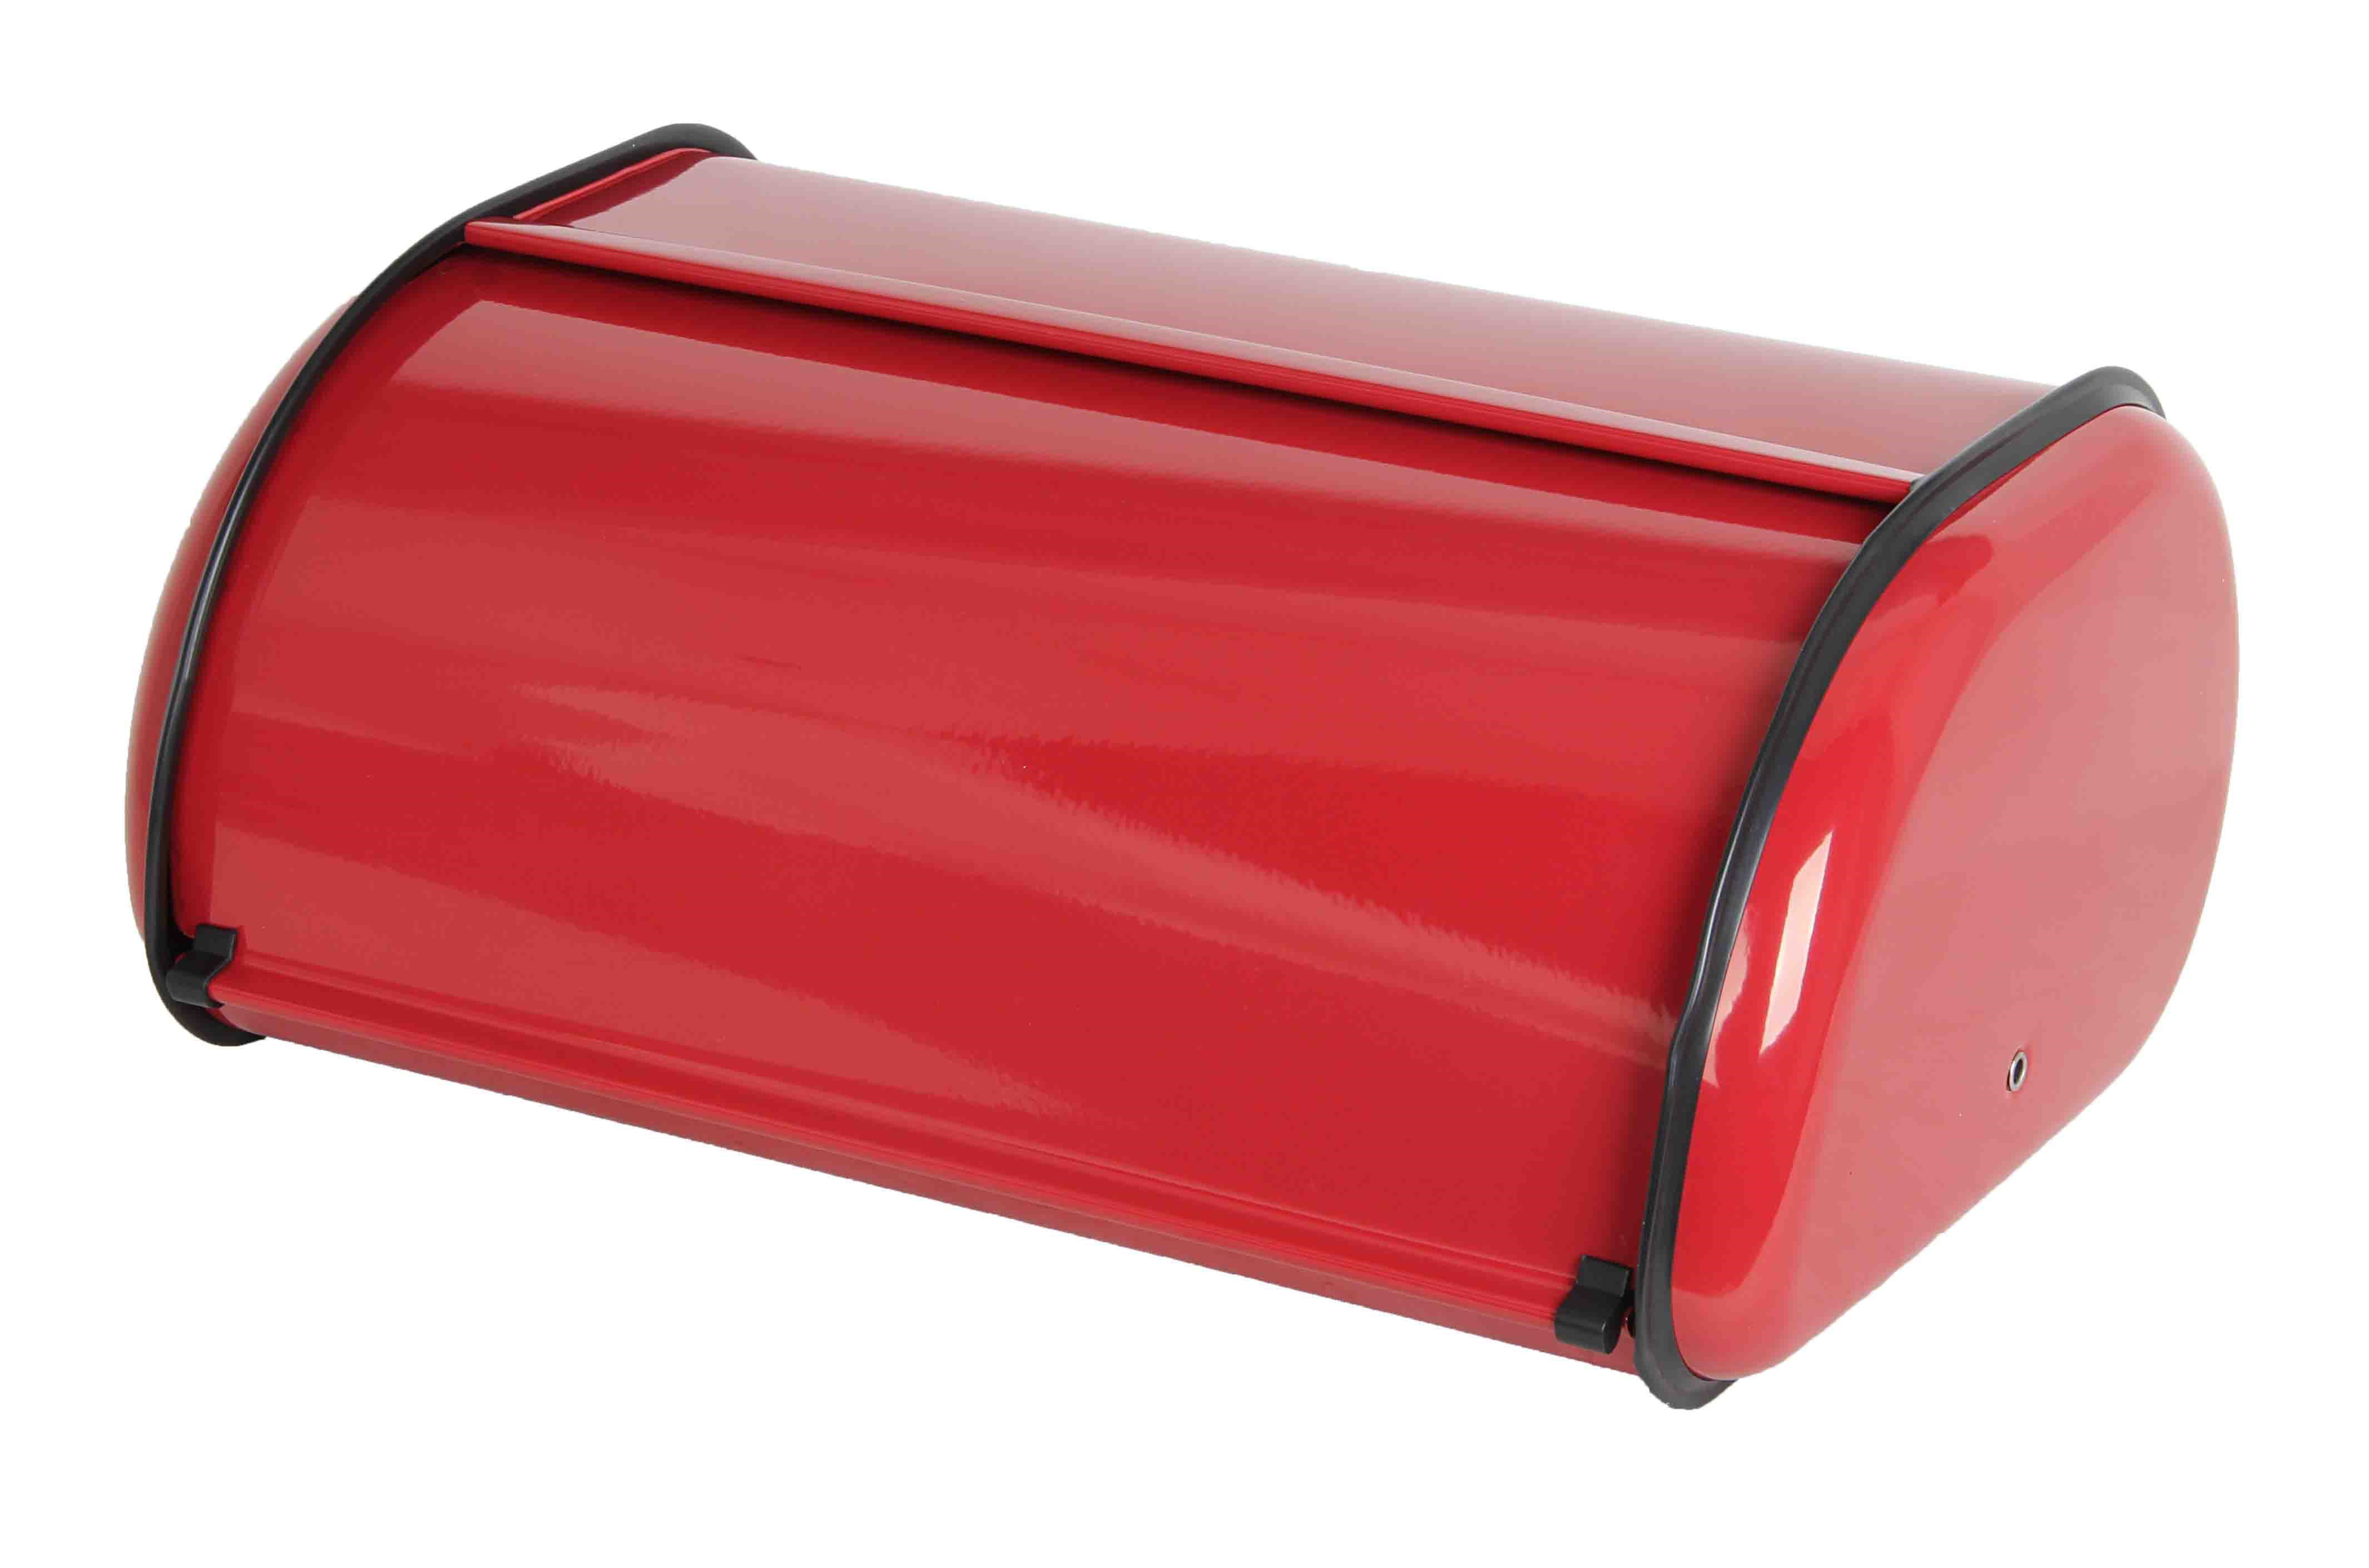 Home Basics Stainless Steel Bread Box Red